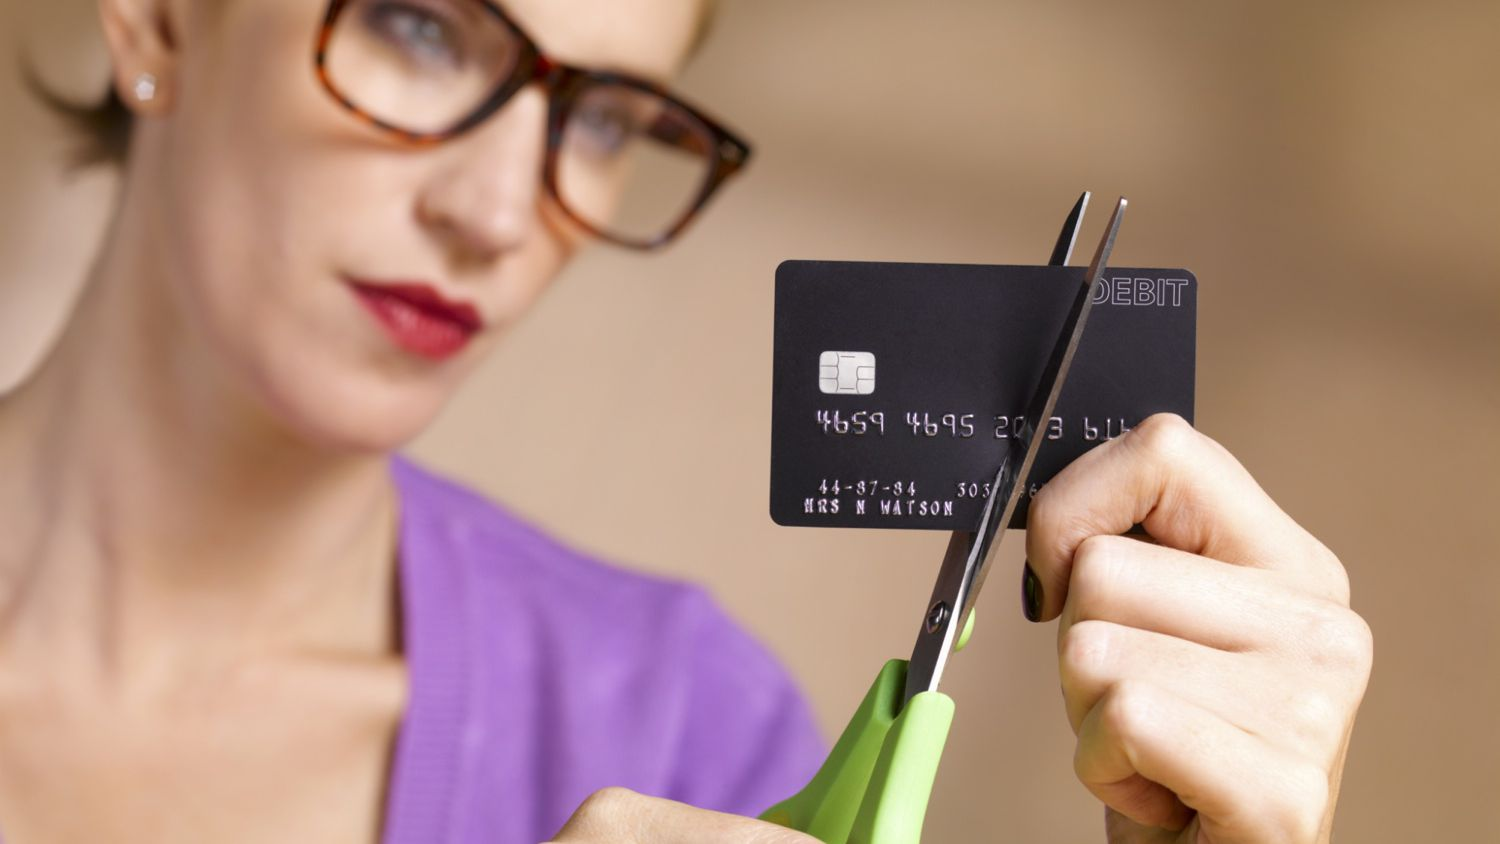 Tips to Stop Using Credit Cards to Get Out of Debt